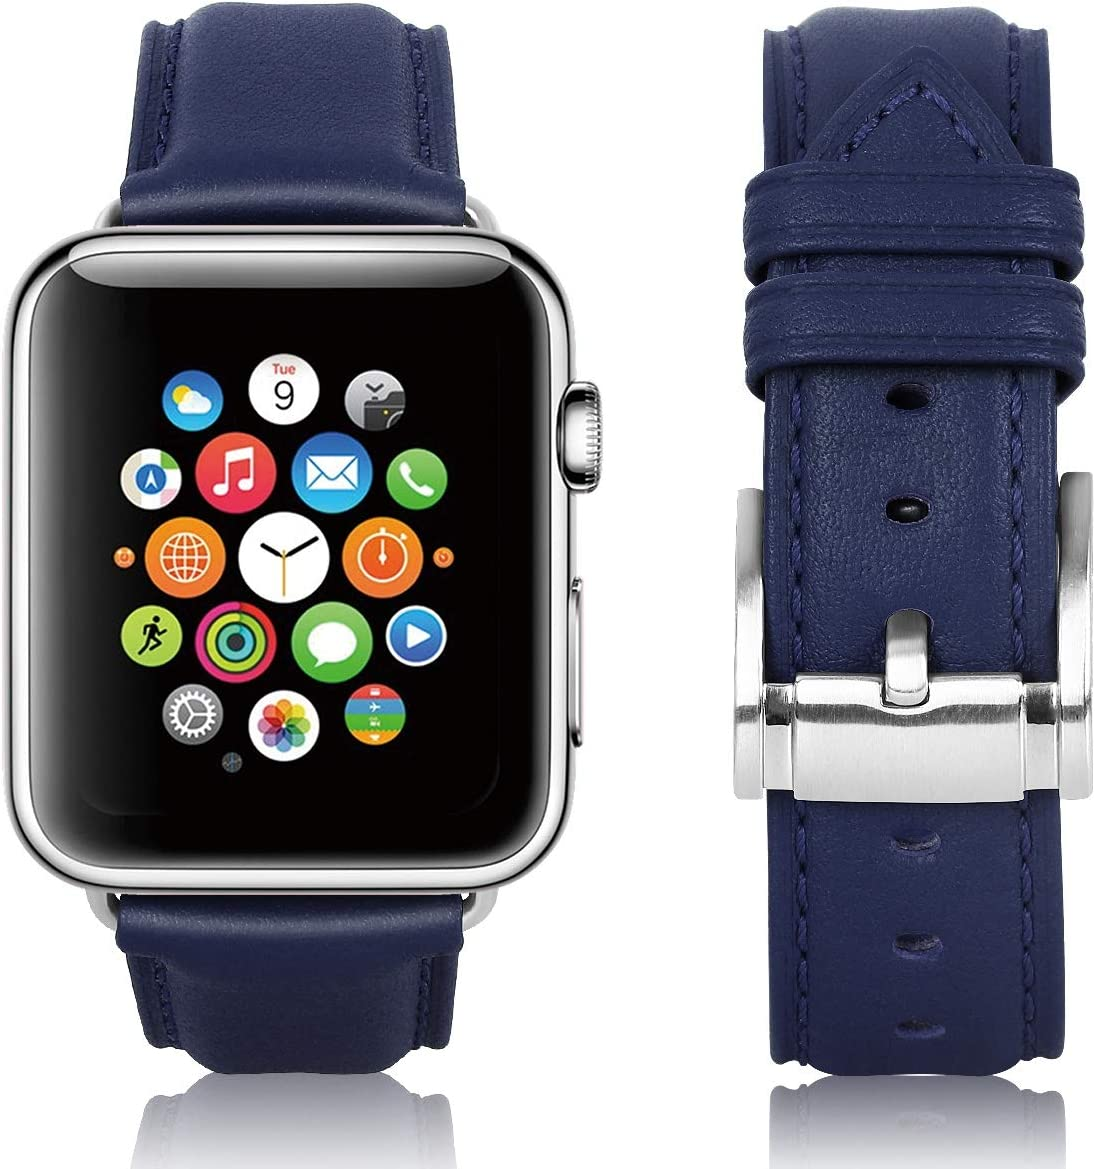 JIKE watch Bands Compatible with Apple Watch Band 38mm 40mm 42mm 44mm, Top Grain Leather Smart Watch Strap Compatible for Men Women iWatch Series 6/ 5 /4 /3 /2 /1,SE (dark blue/silver buckle, 42mm44mm)